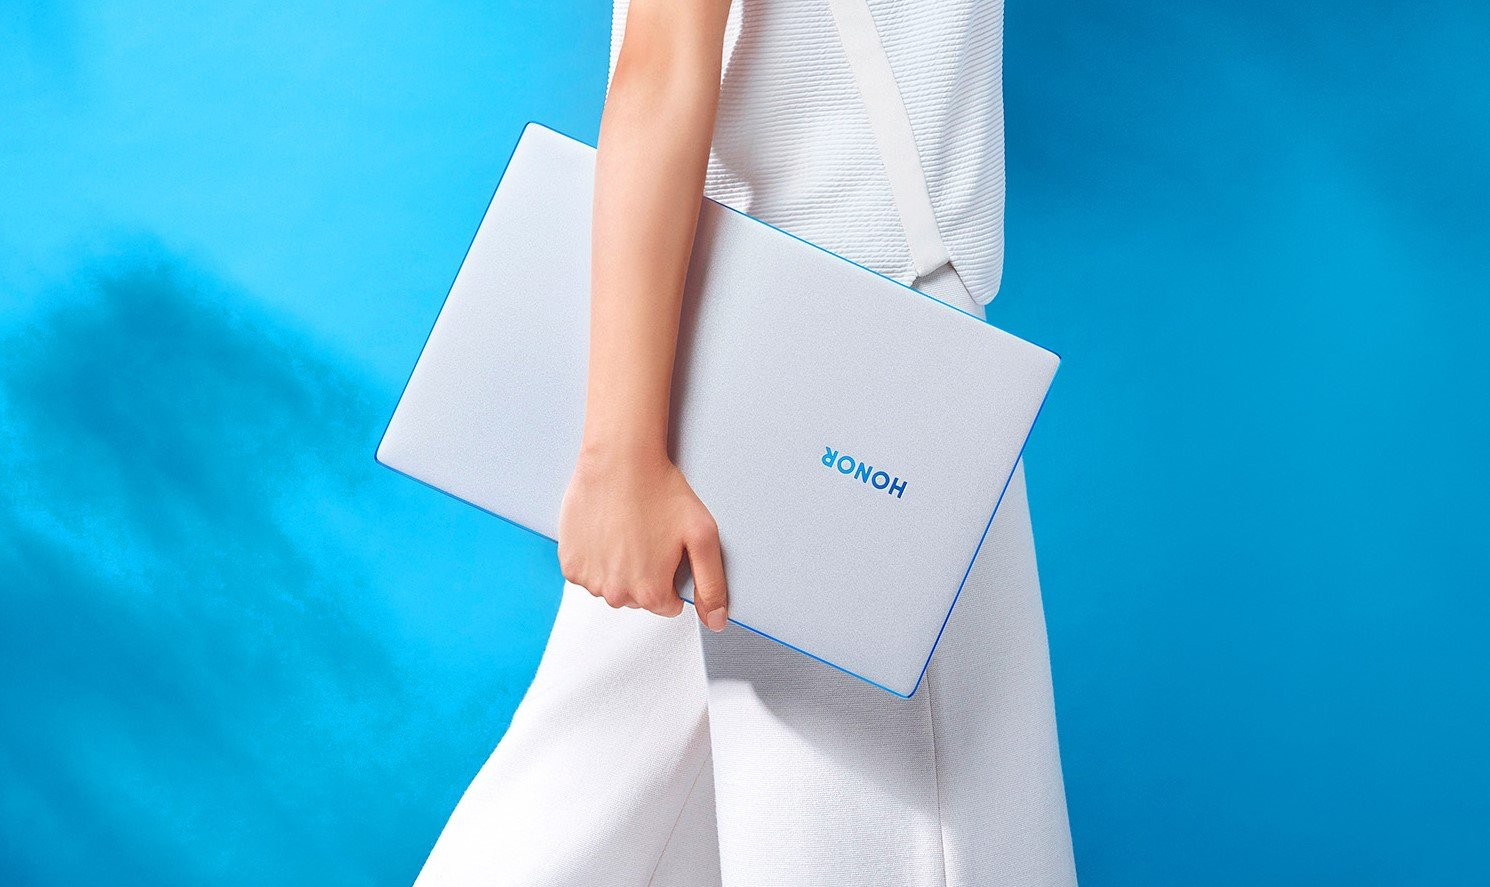 Honor announces Shared Laptop Scheme for MagicBook devices in China